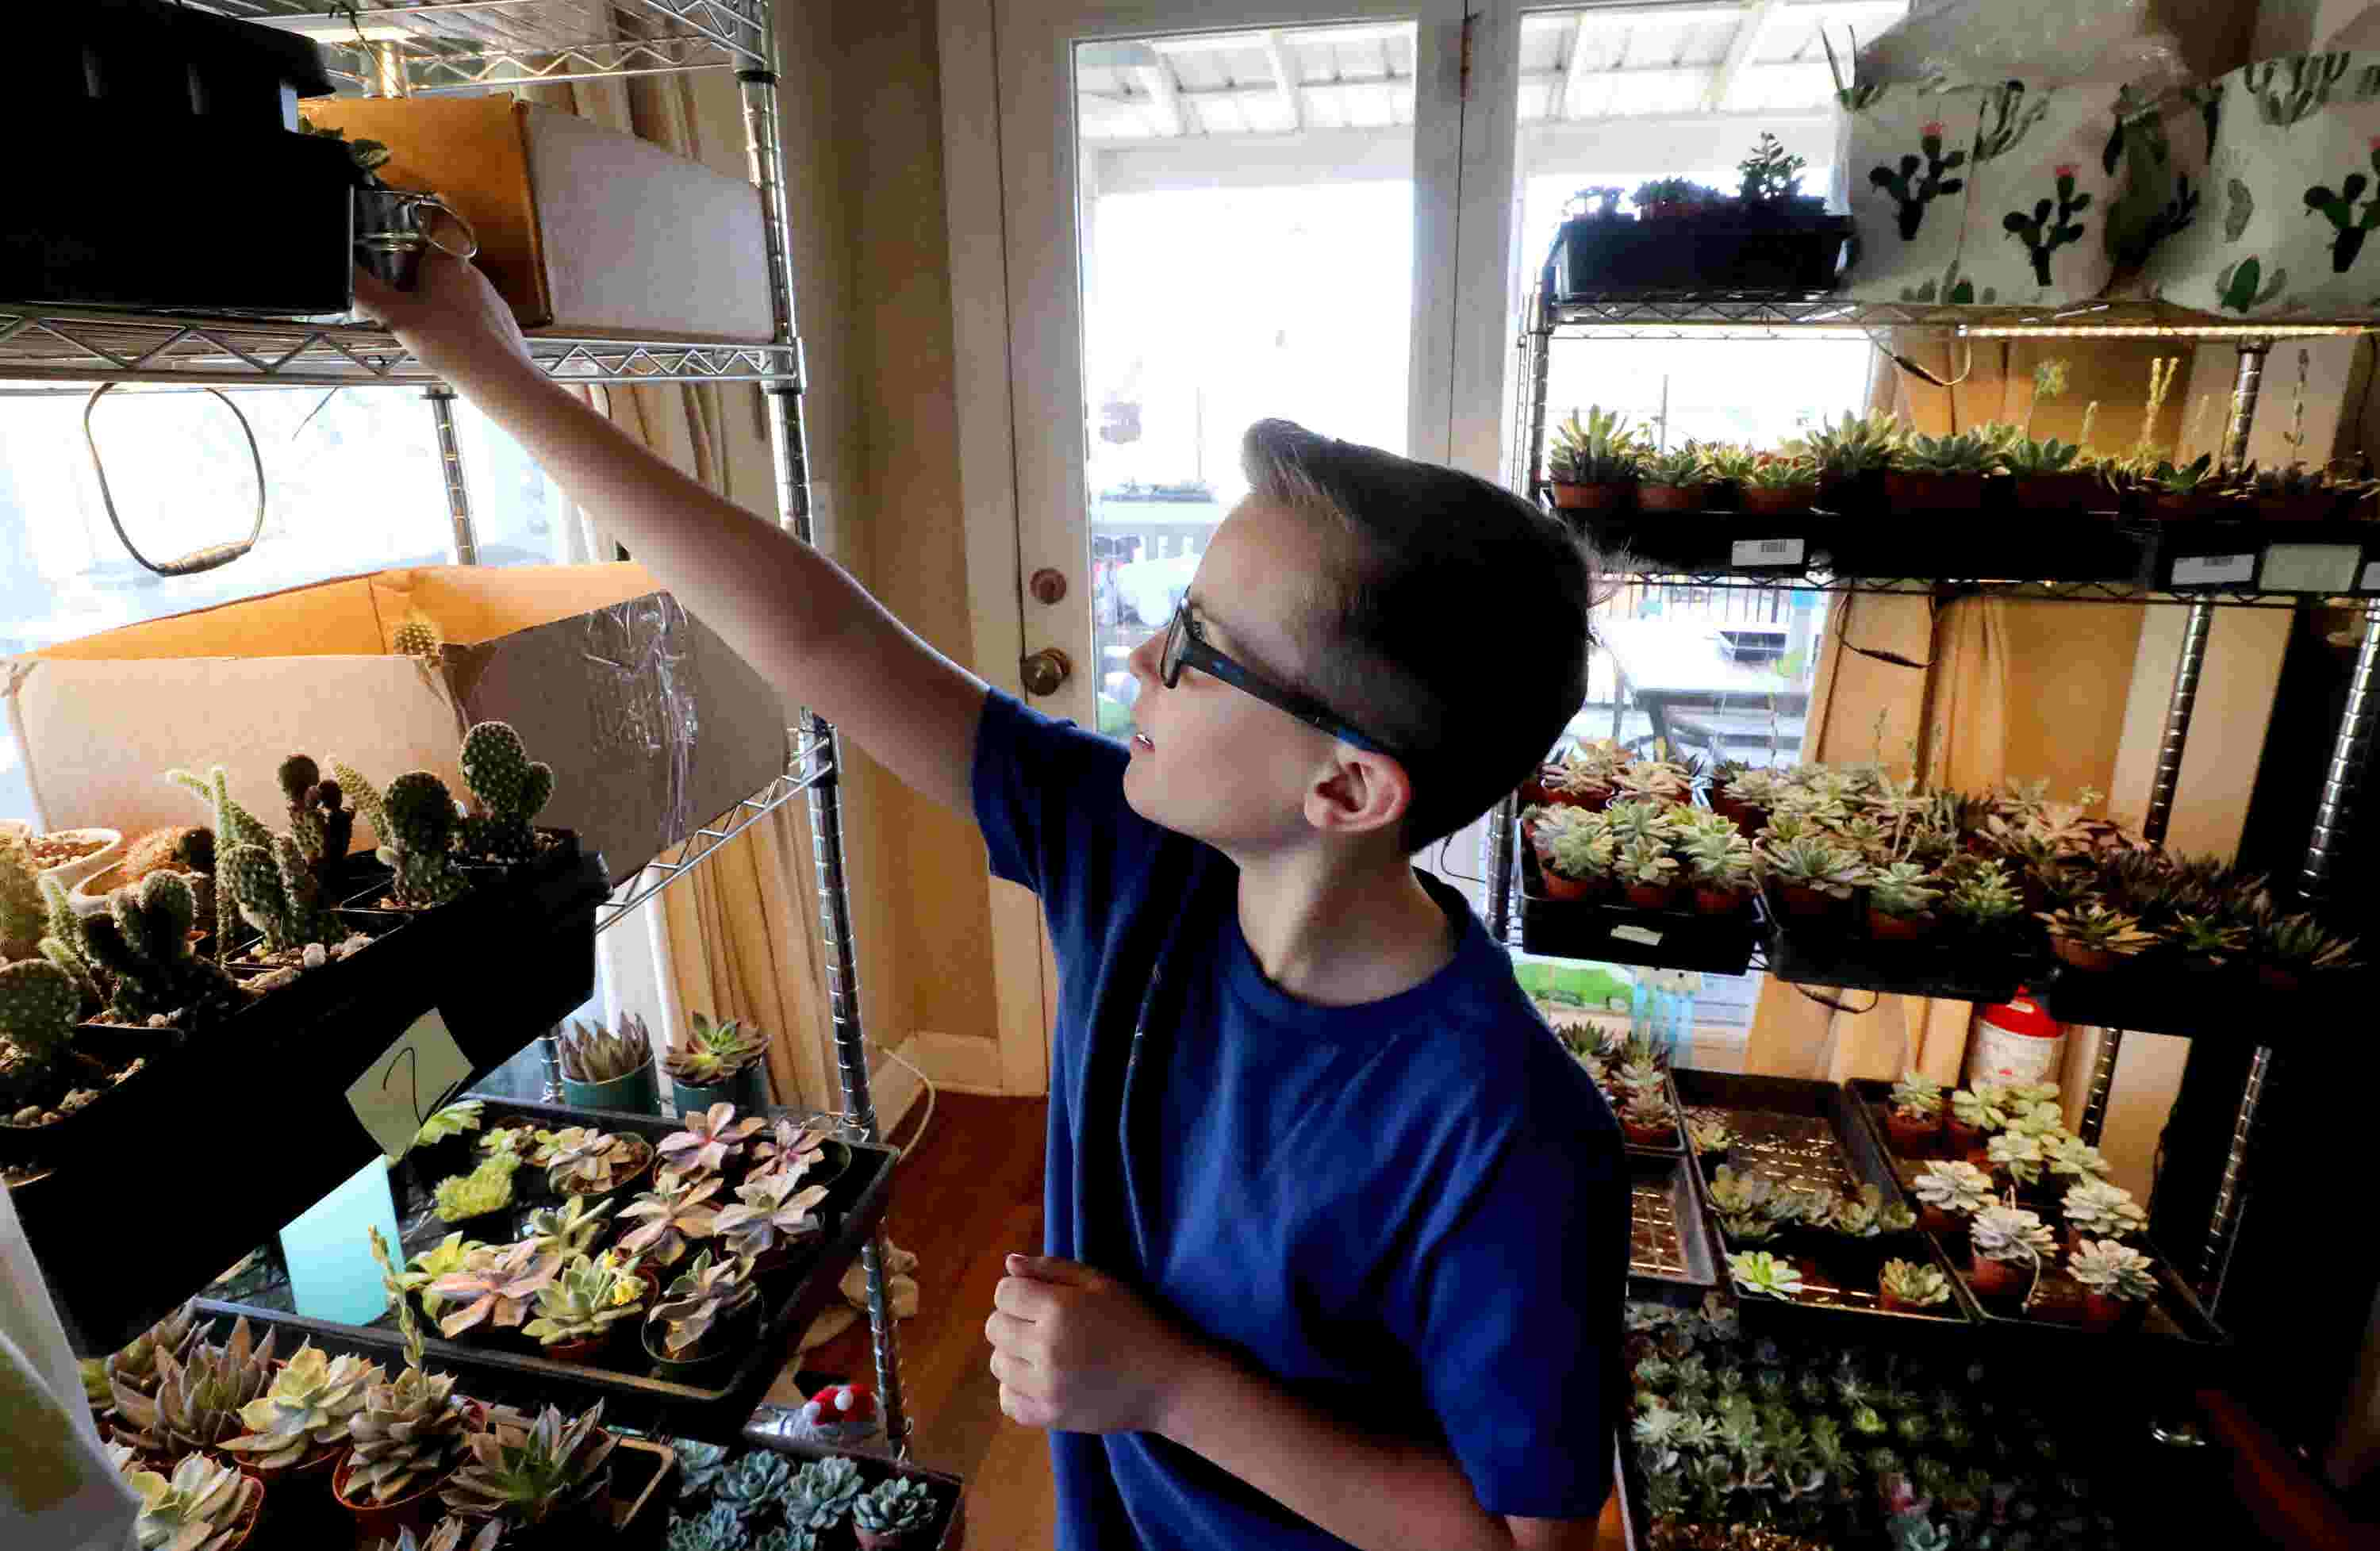 VIDEO: Young Murfreesboro entrepreneur starts cactus business